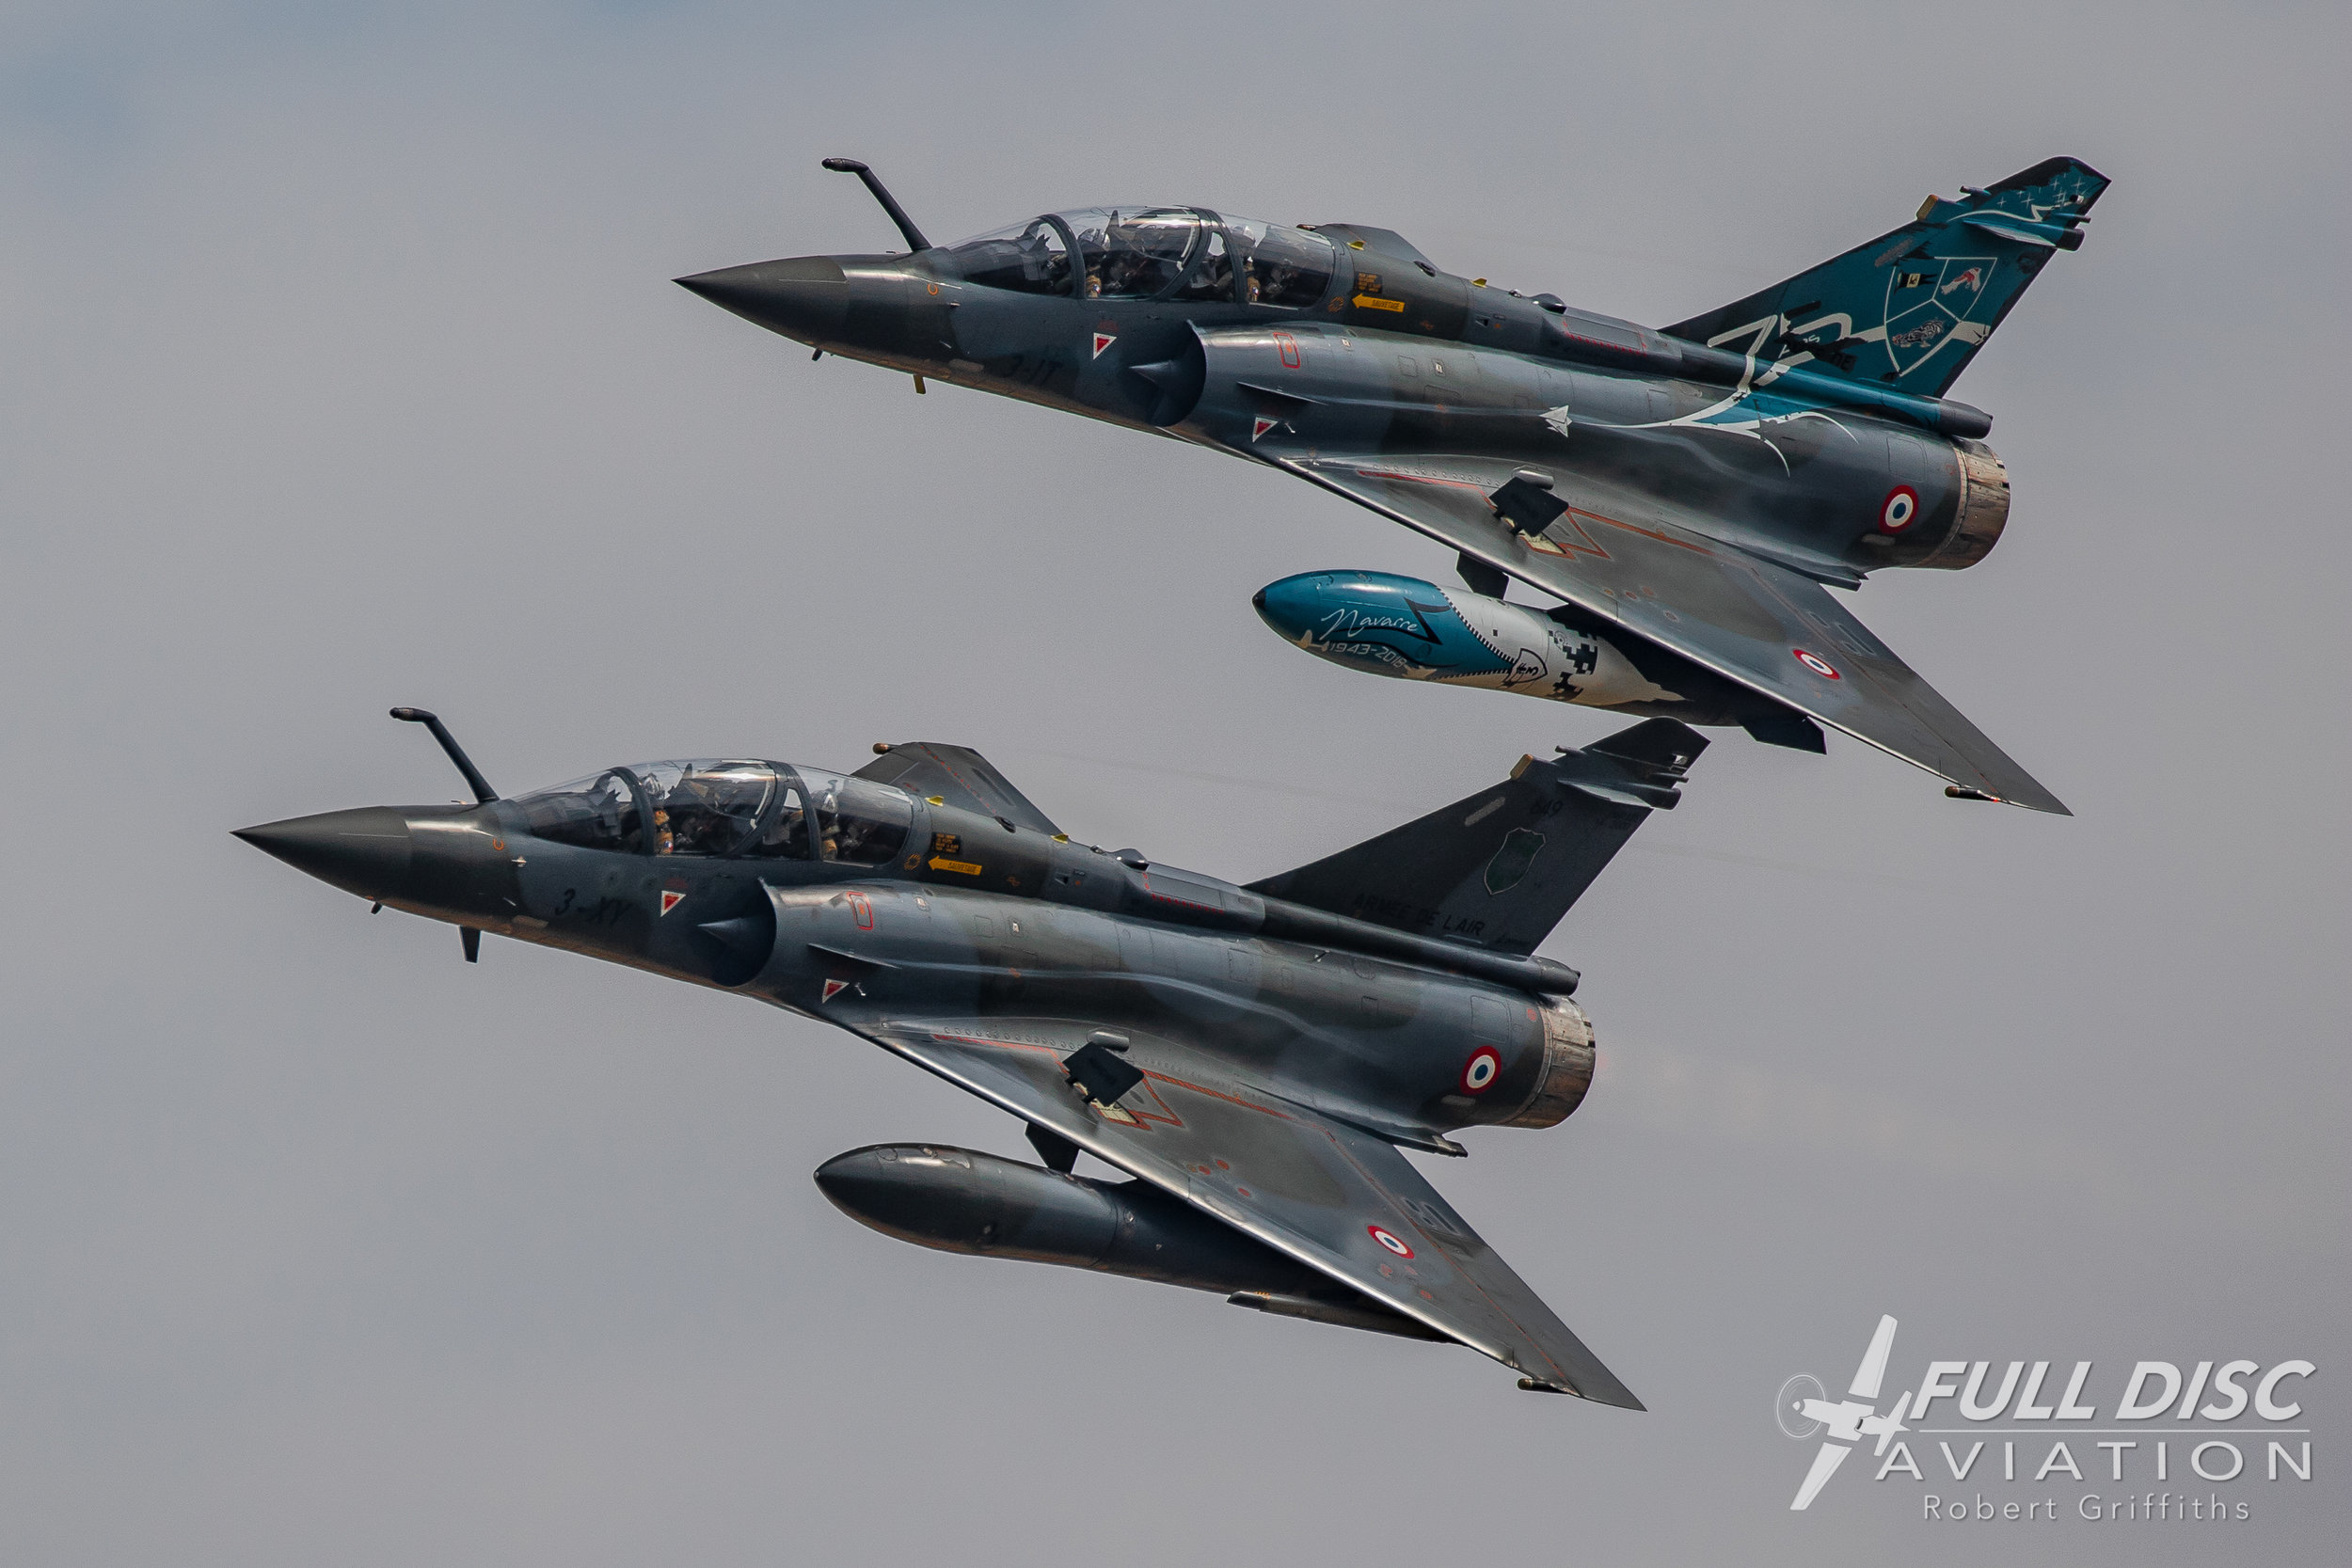 Robert Griffiths RIAT-July 13, 2018-28.jpg